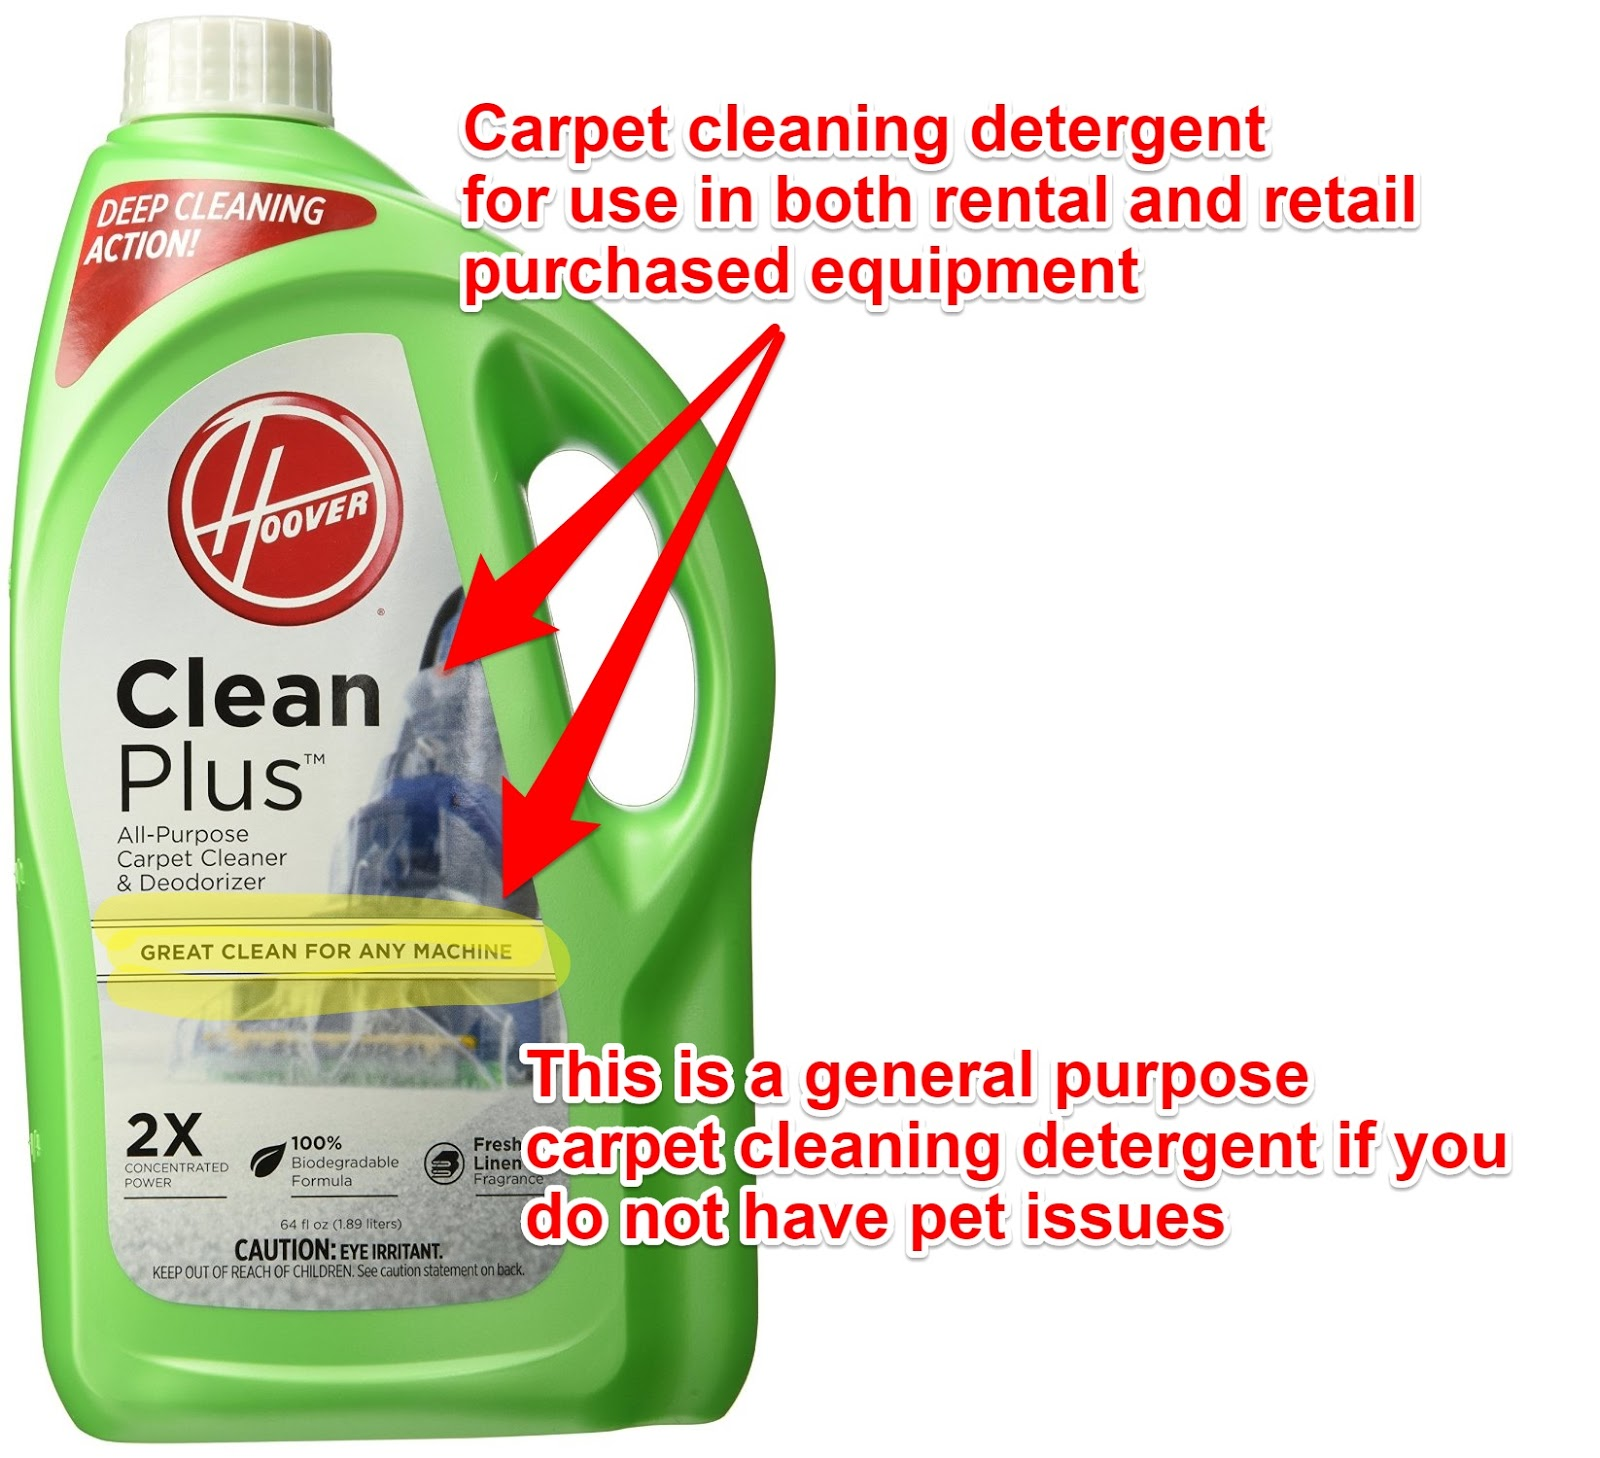 This carpet cleaning detergent can be found at this Amazon link